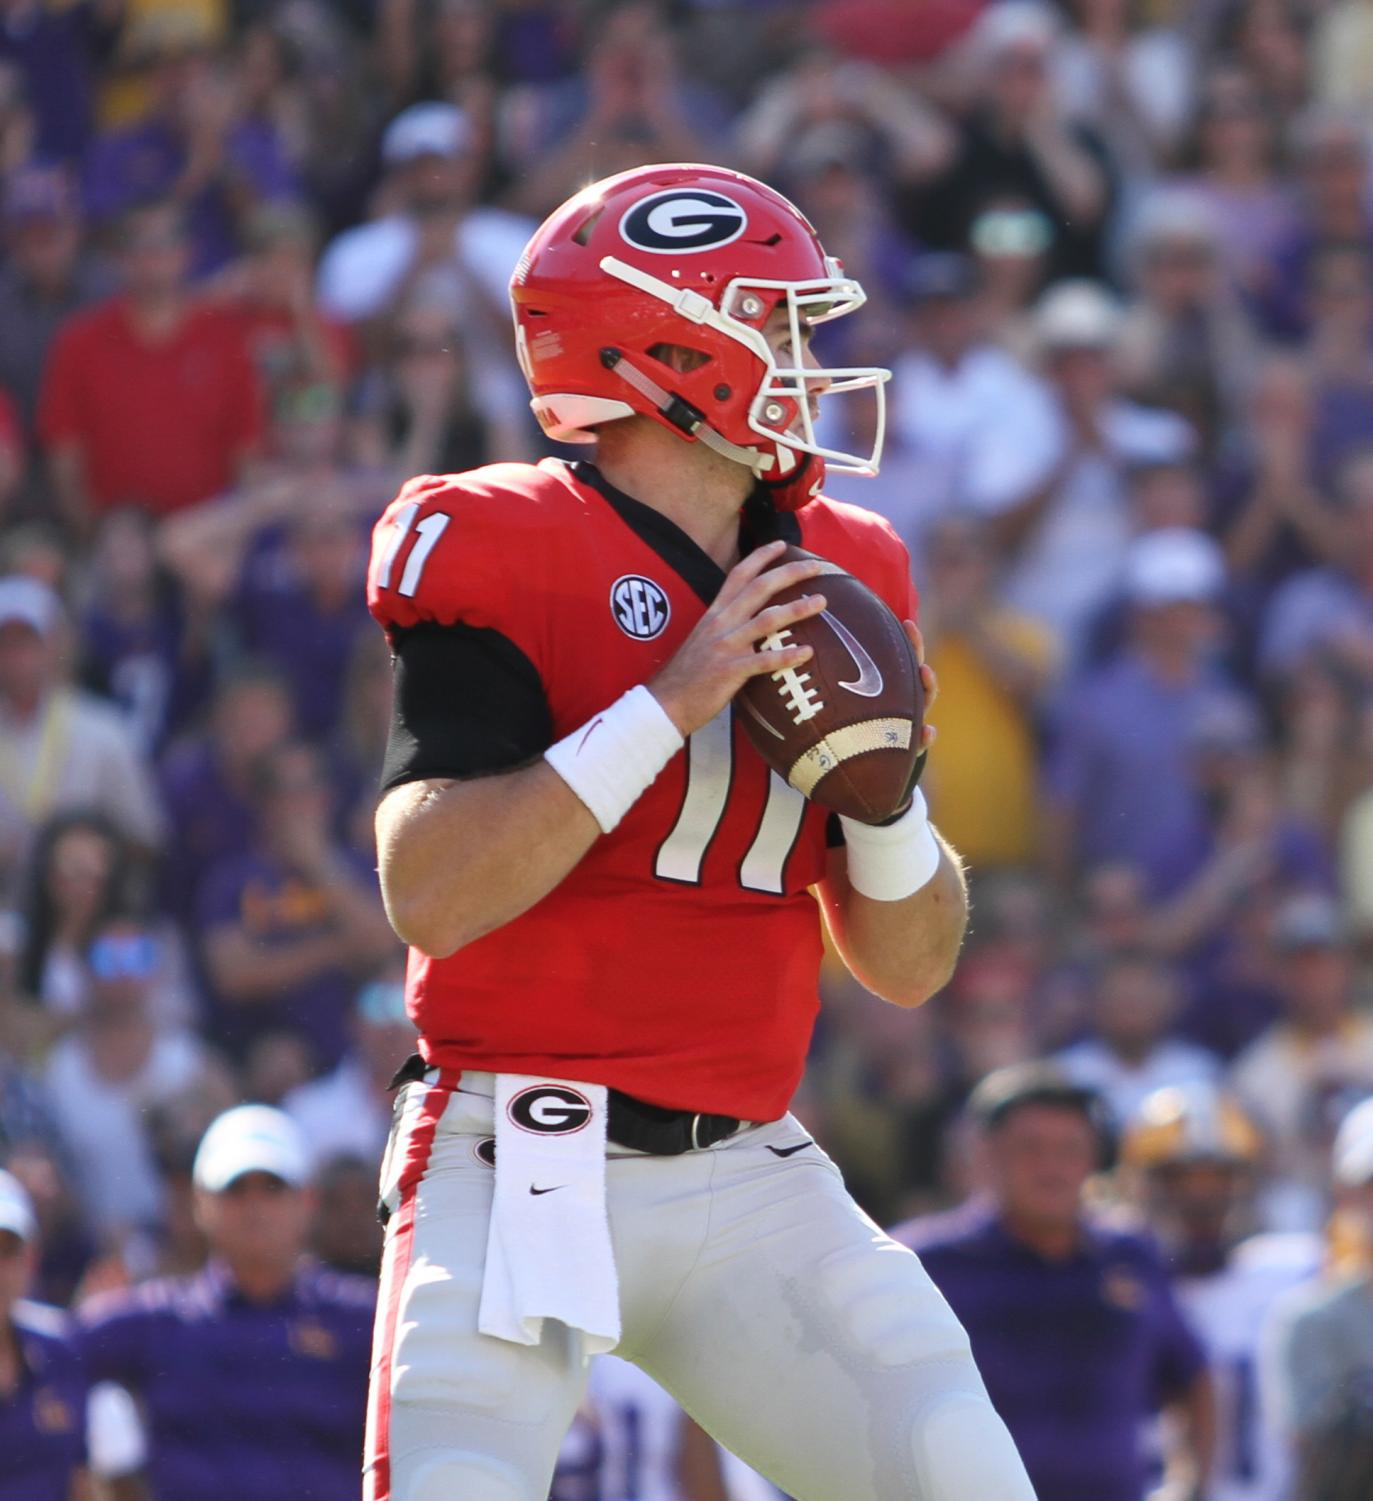 Georgia can still carve out a spot in the College Football Playoff if they win the SEC.